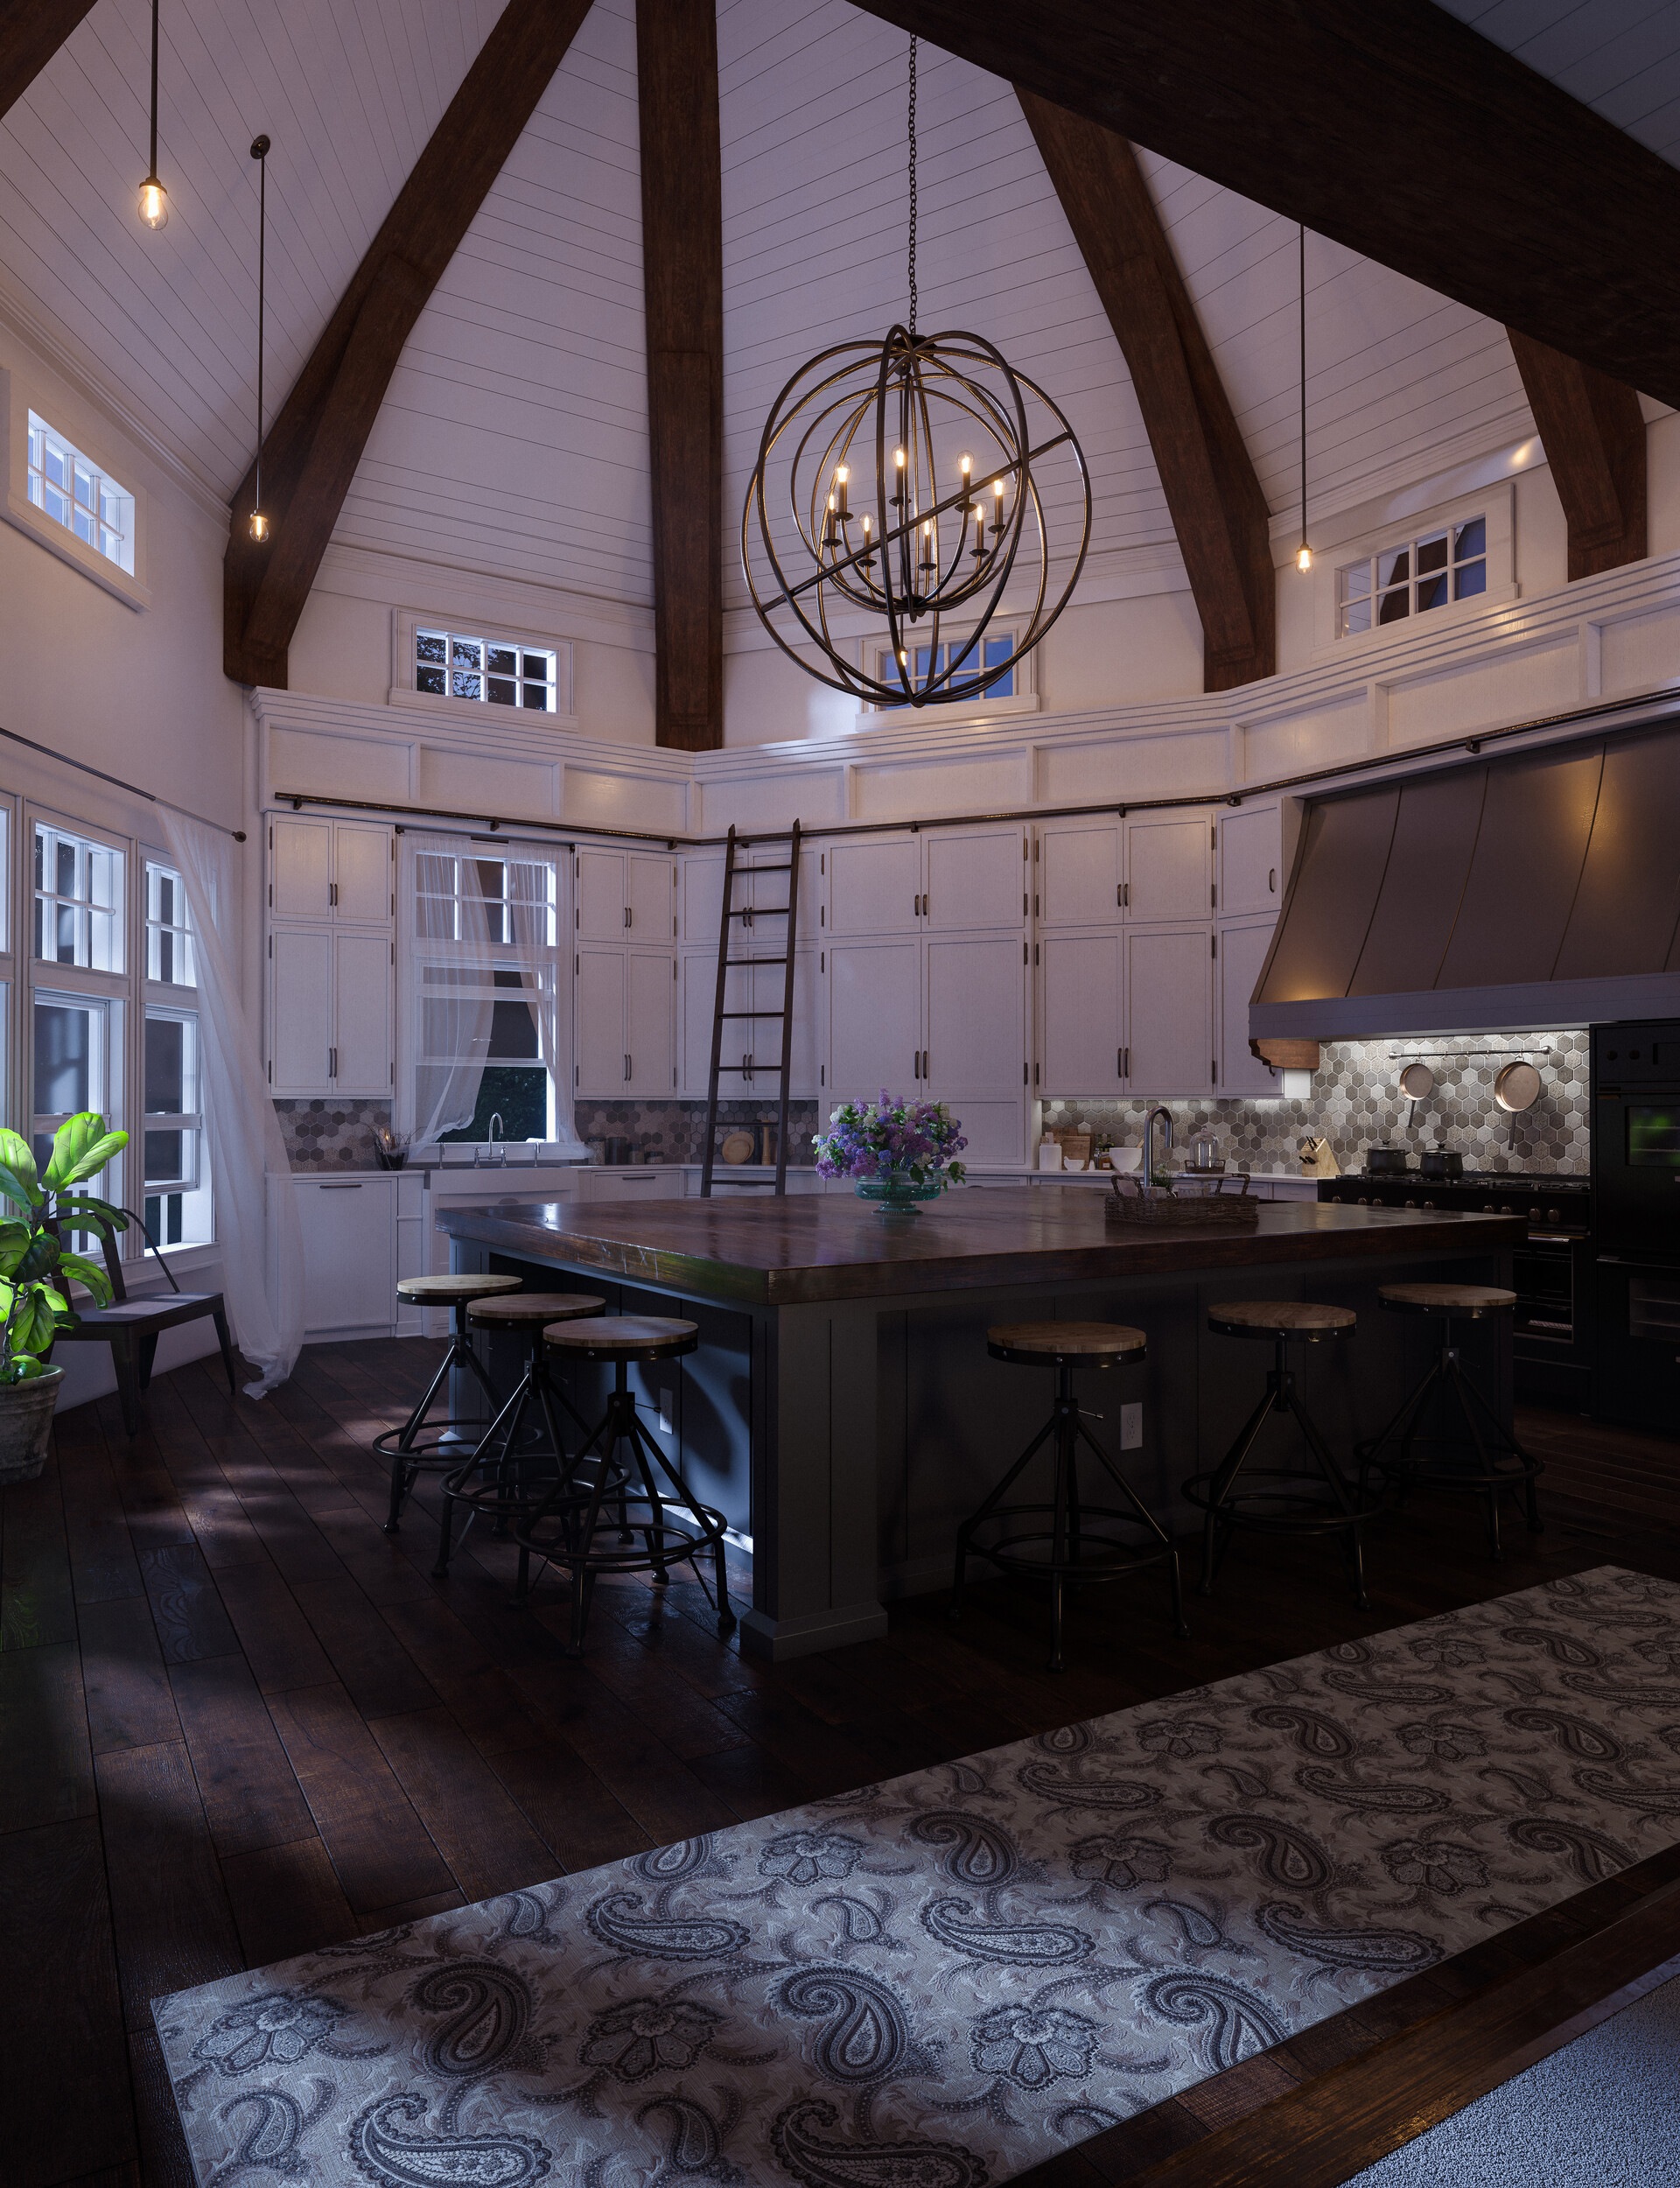 Lake house kitchen - Evening time.